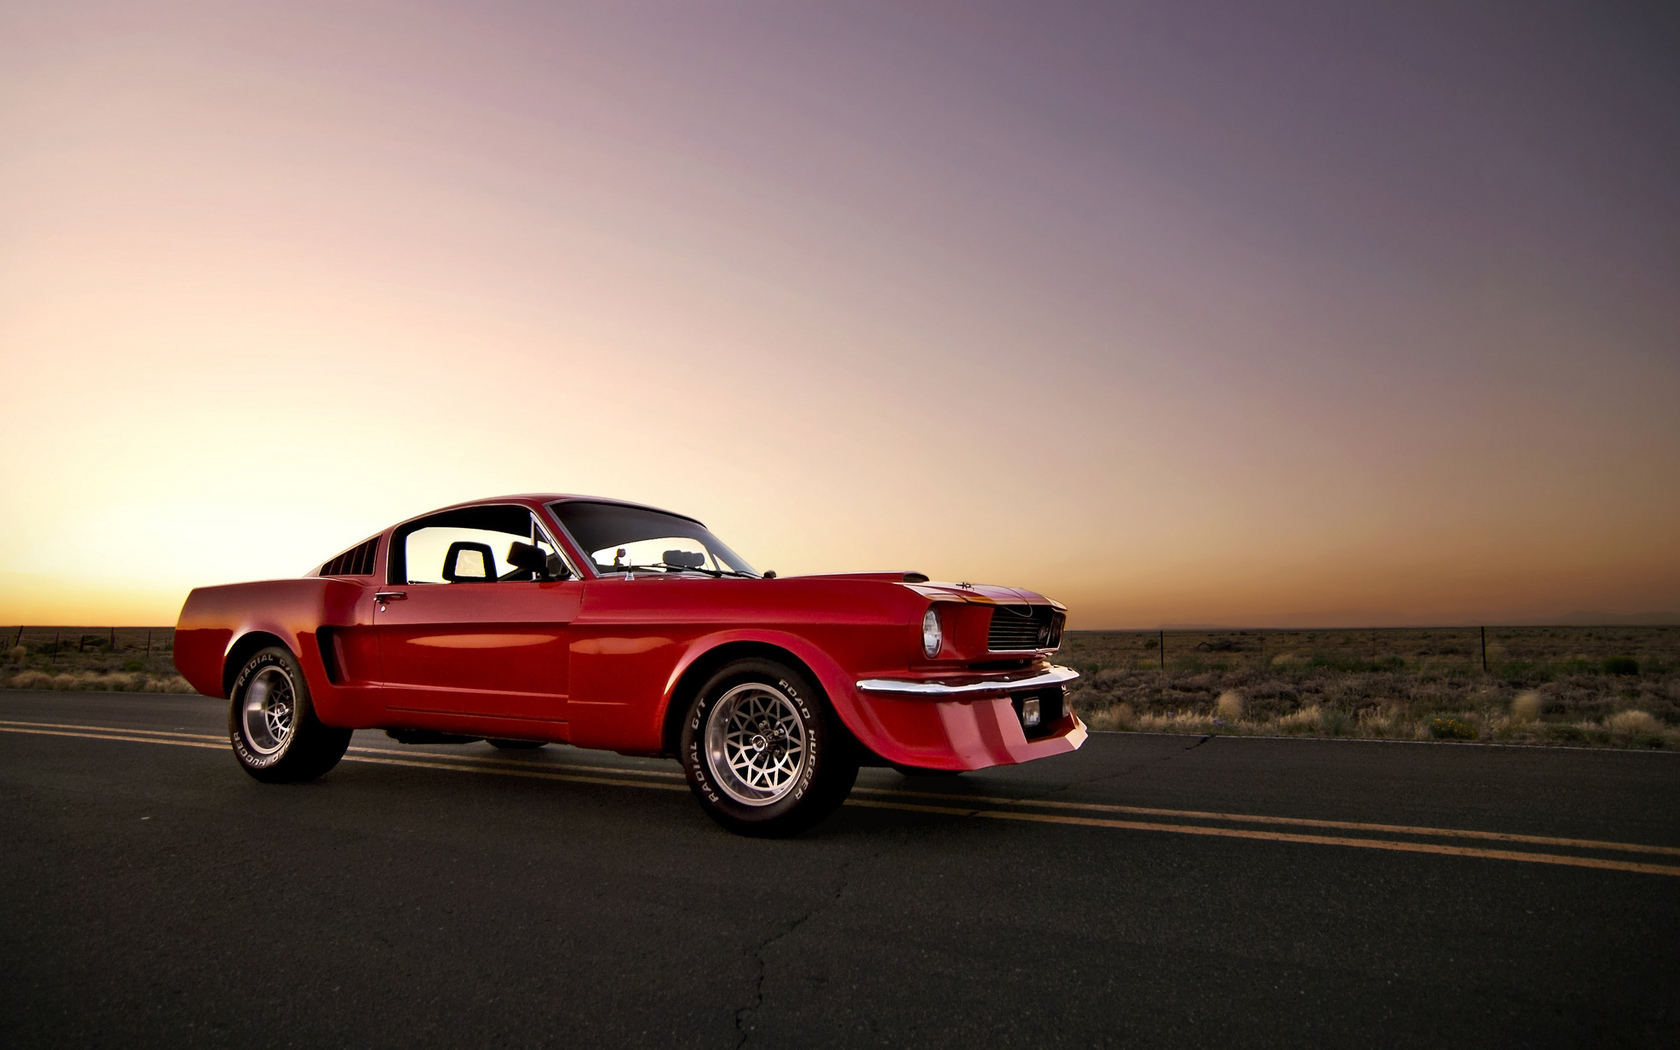 red, mustang, muscle car, мускул кар, front, форд, мустанг, ford